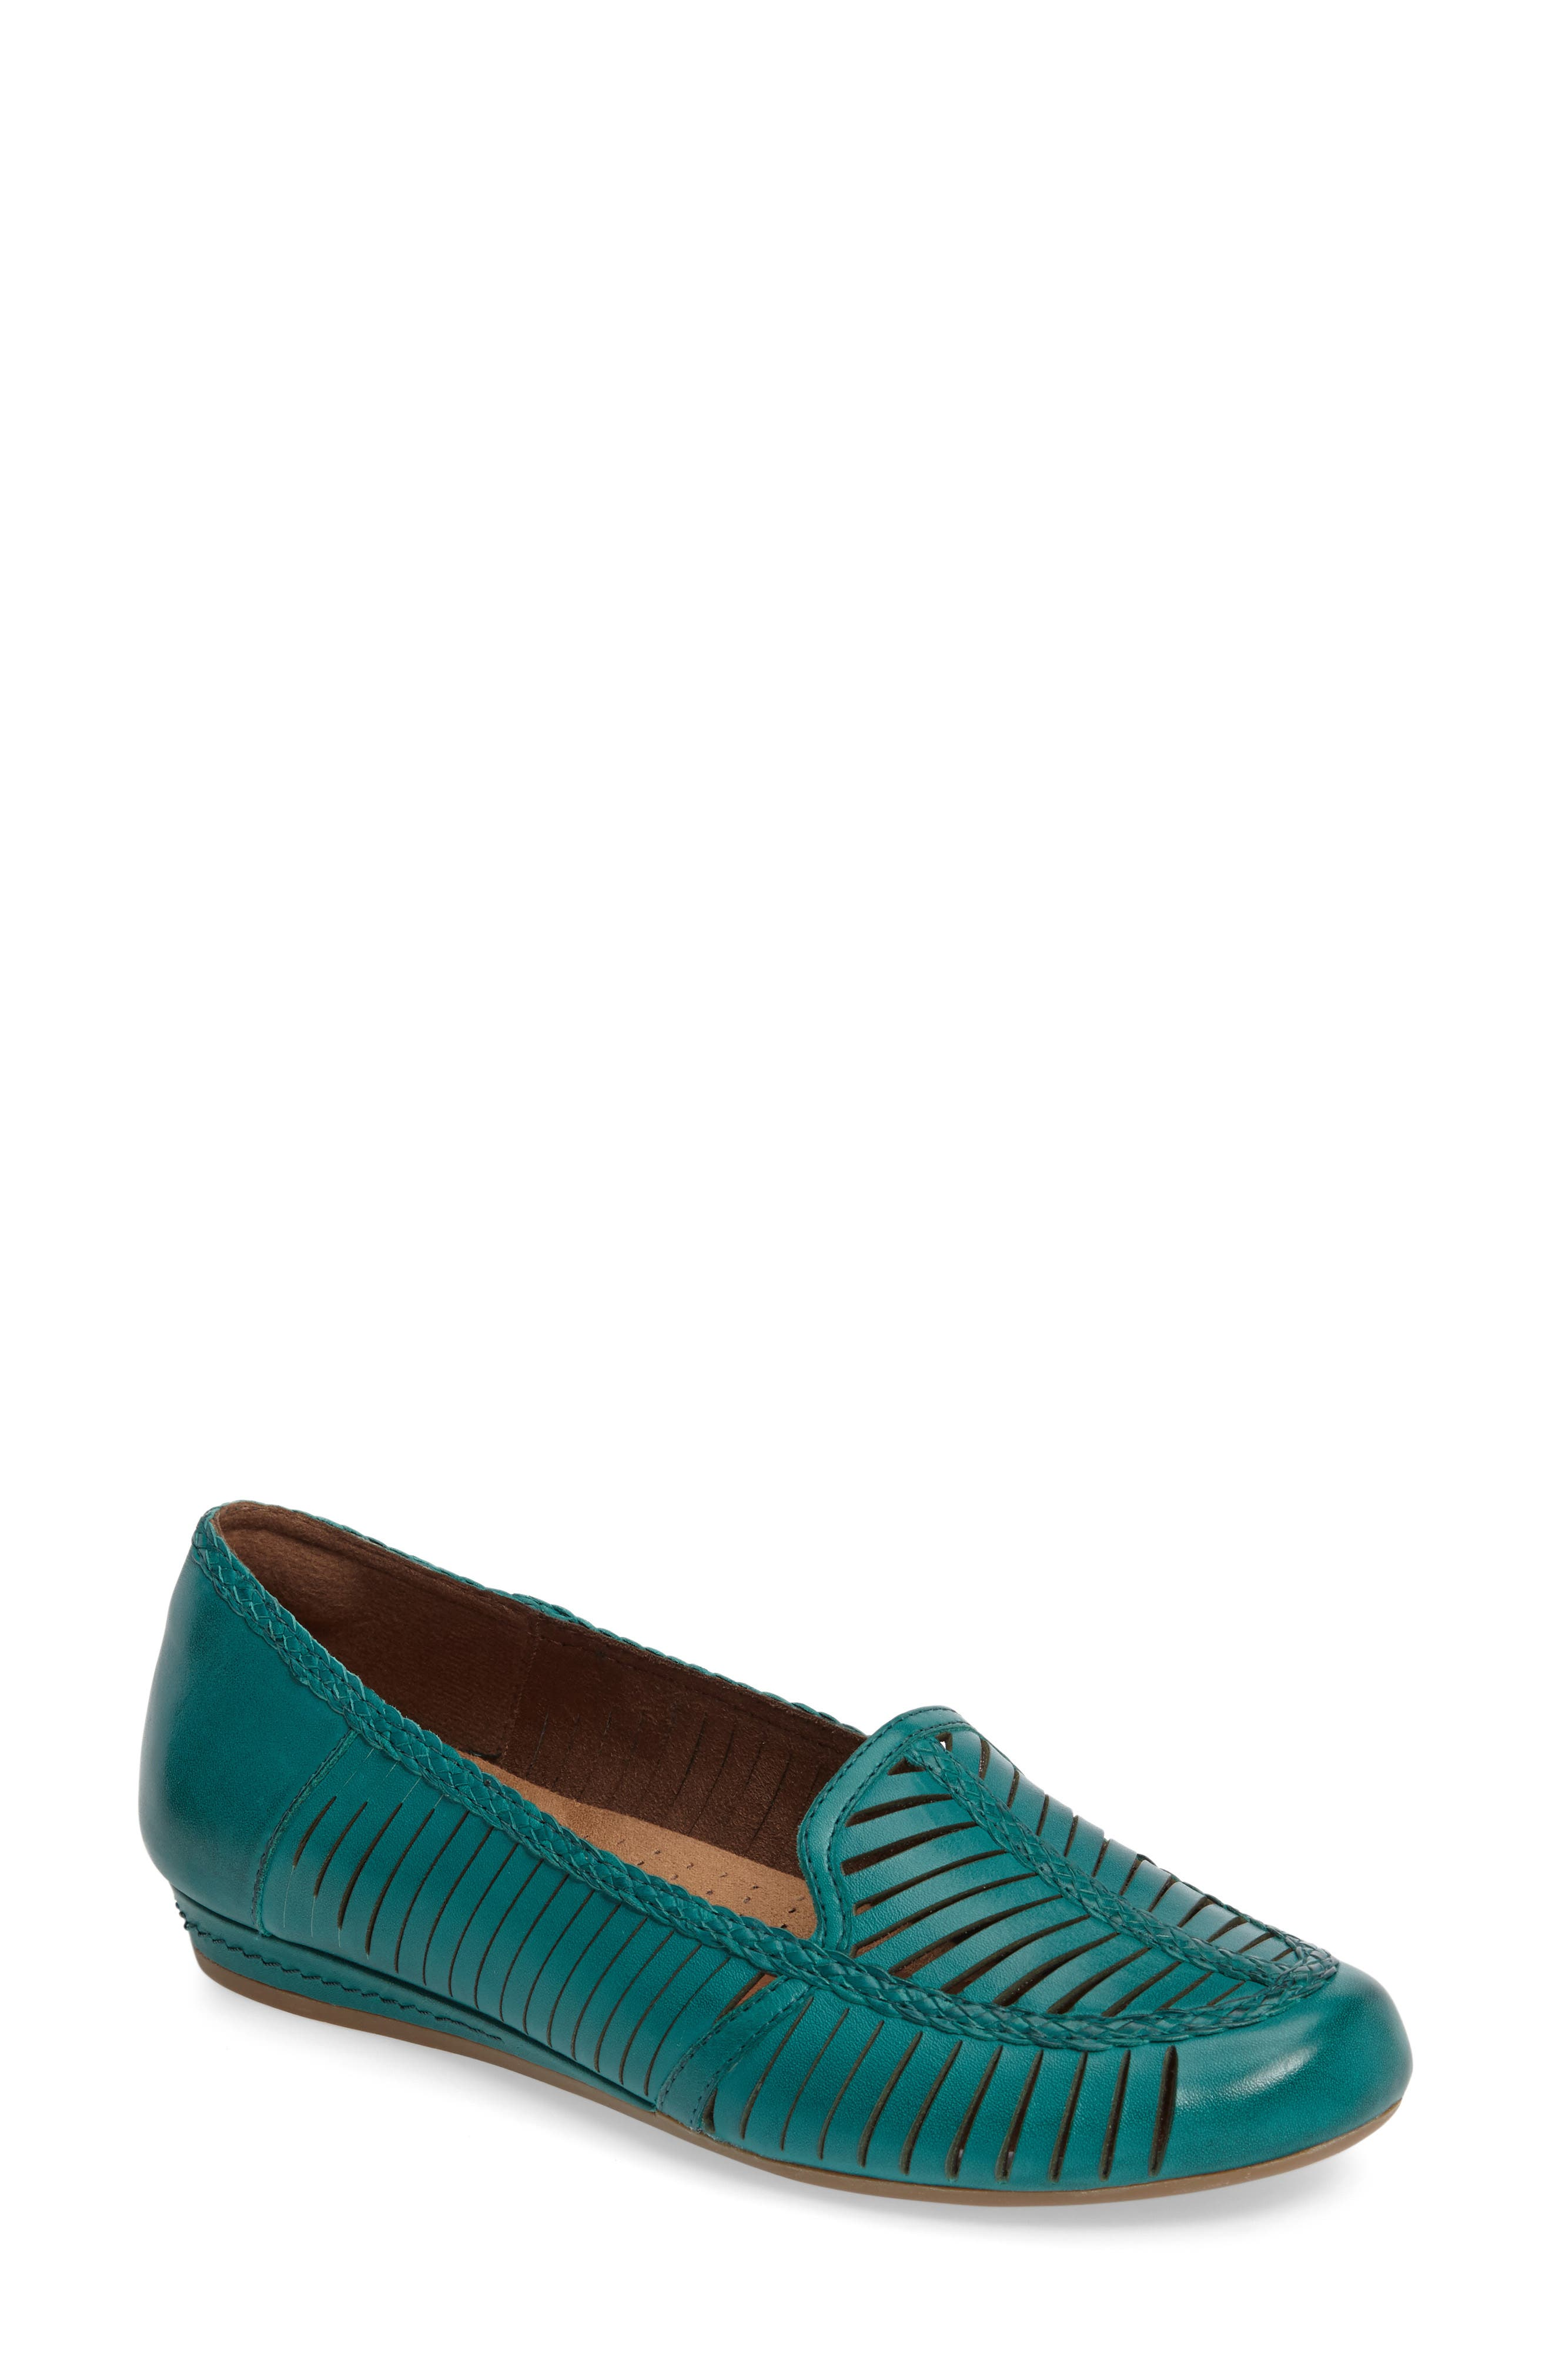 Rockport Cobb Hill Galway Loafer (Women)